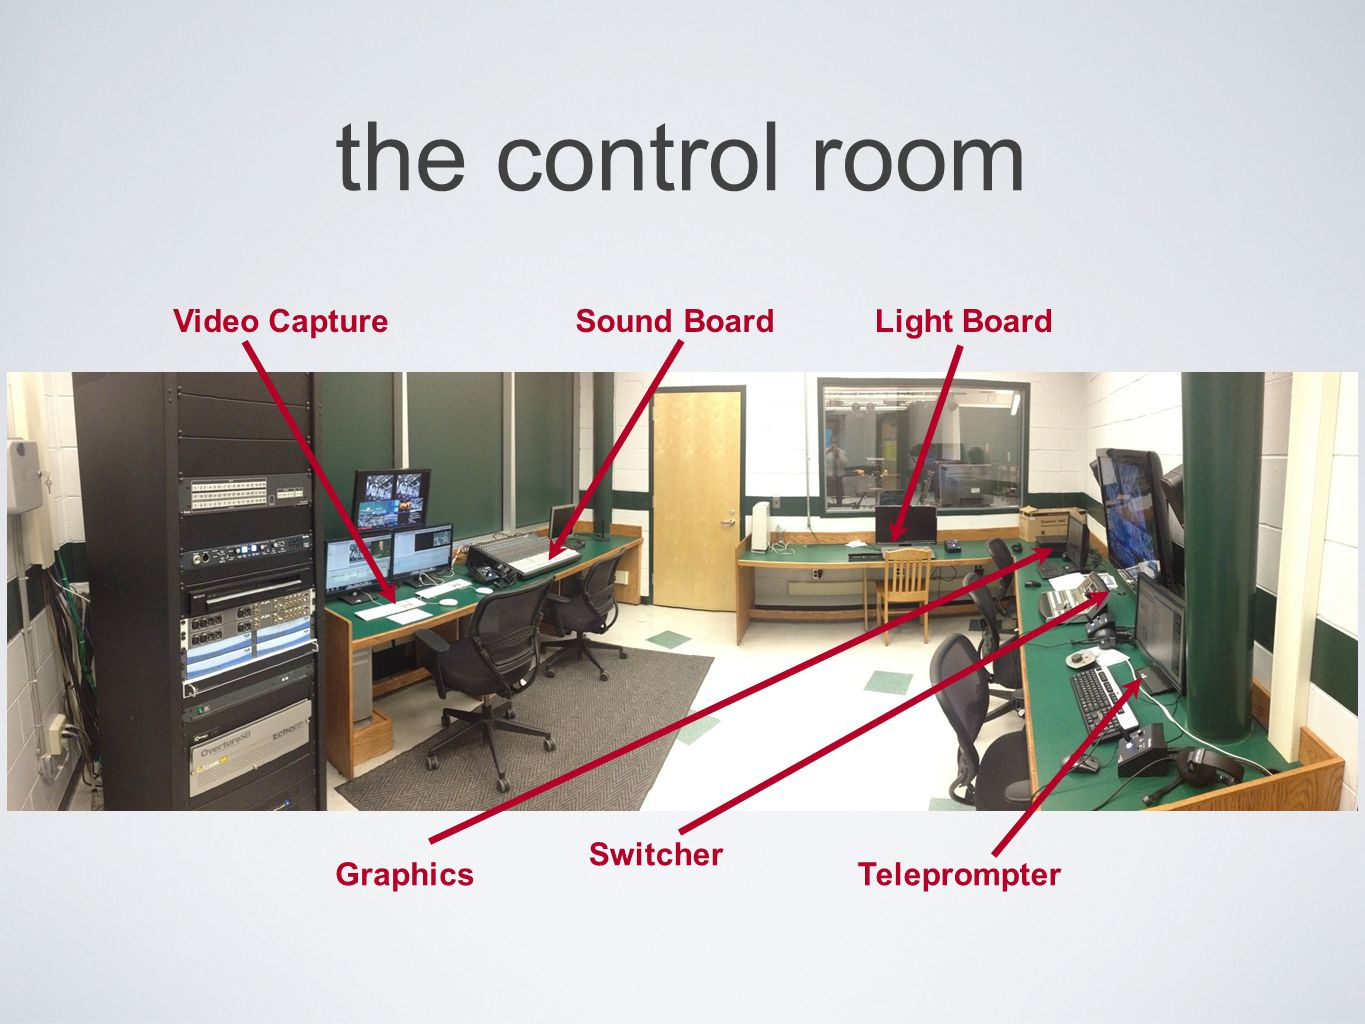 the control room Video CaptureSound BoardLight Board Switcher TeleprompterGraphics